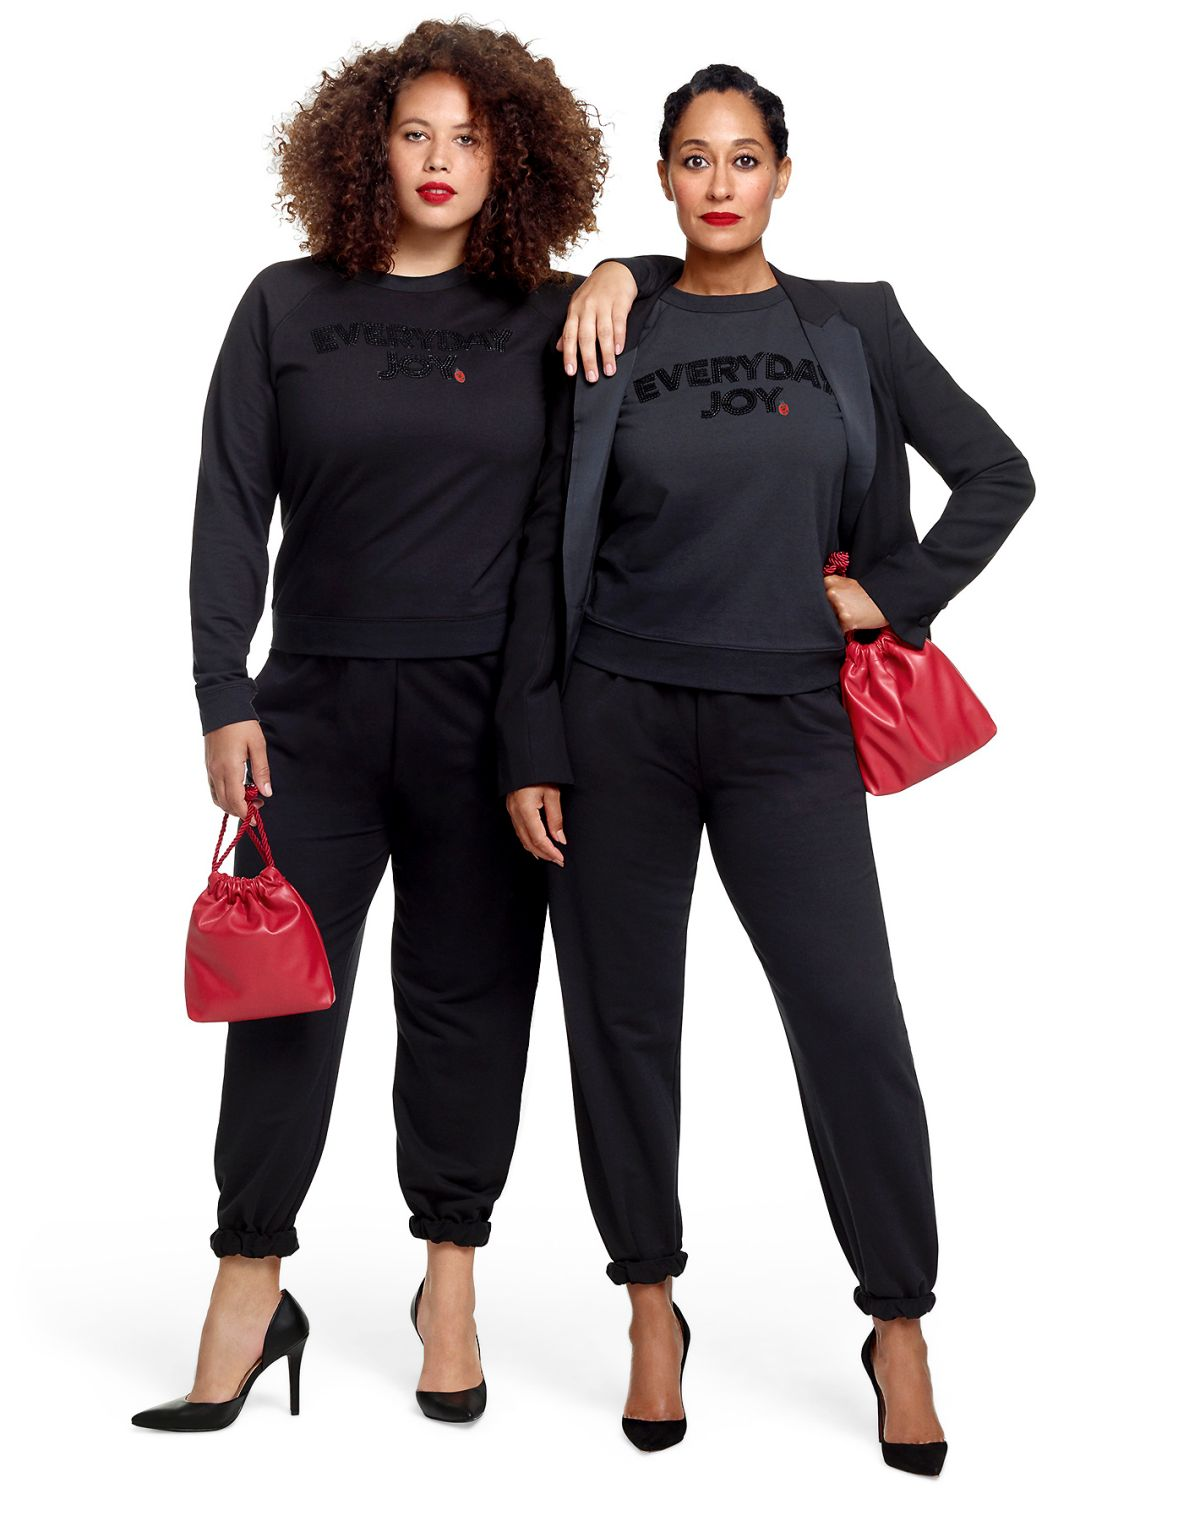 ca3c1347 Tracee Ellis Ross Launches Collection With JCPenney < NikkiFreeStyle